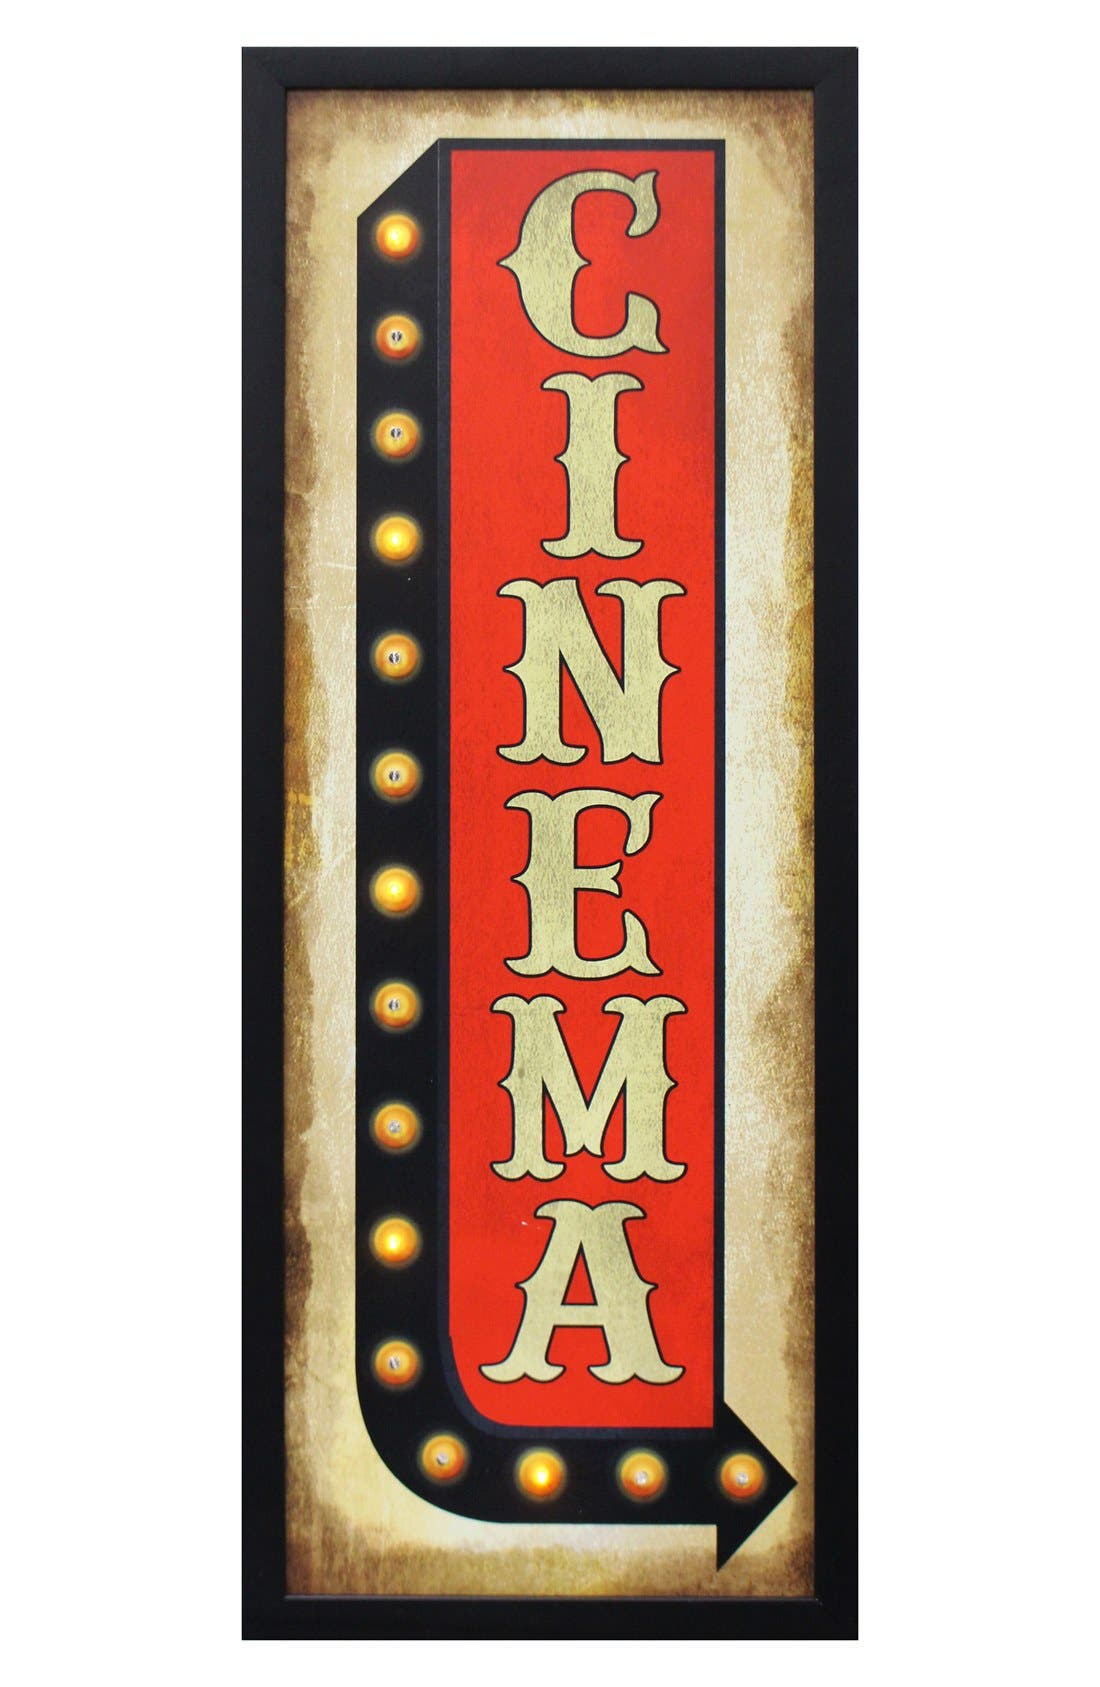 Main Image - Crystal Art Gallery 'Cinema' LED Light-Up Marquee Sign